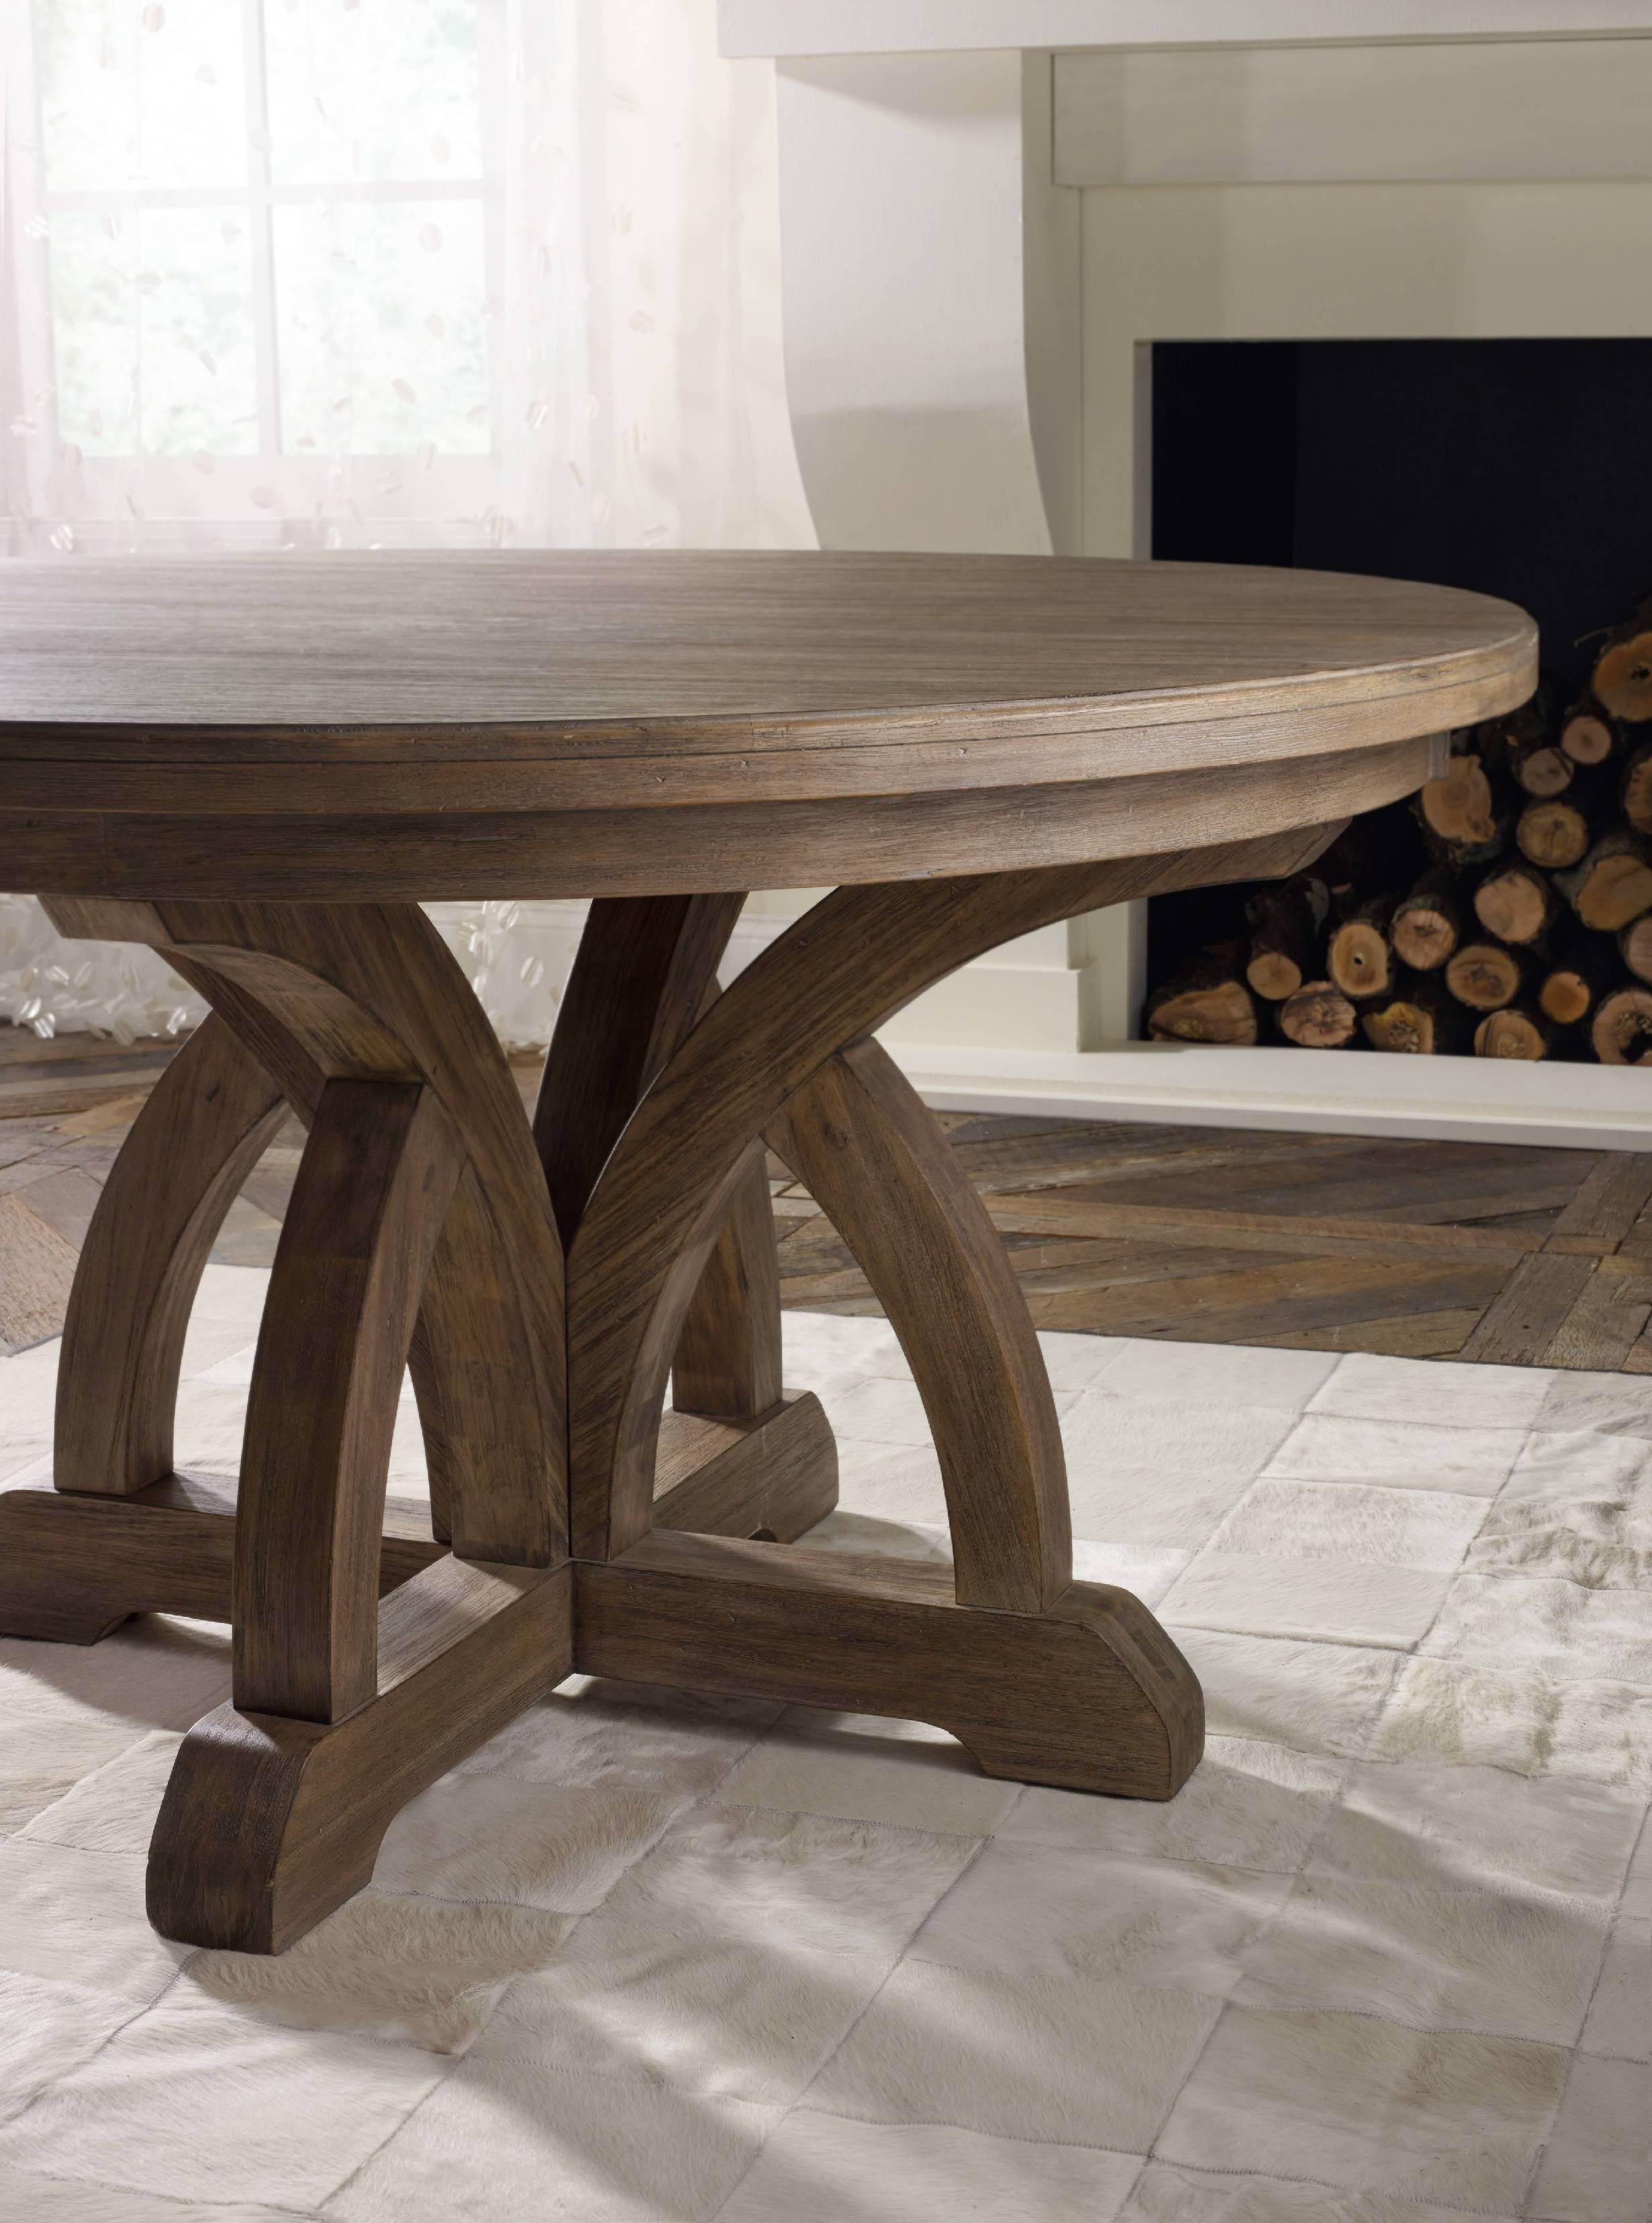 Hooker Furniture Dining Room Corsica Round Dining Table W 1 18in Leaf 5180 75203 Furniture